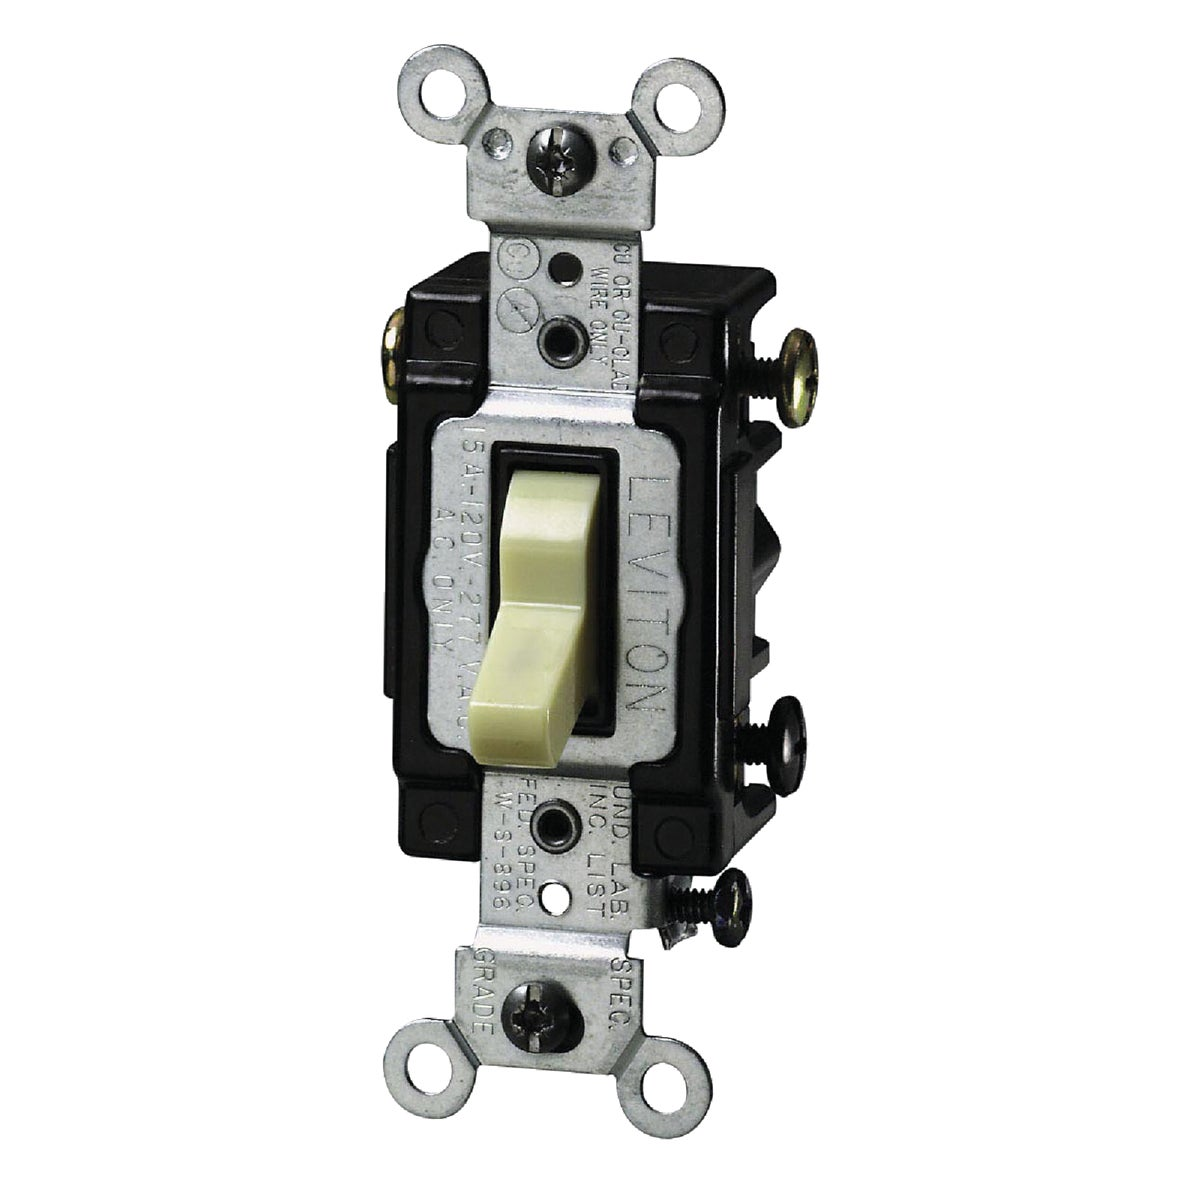 IV 3-WAY LTD SWITCH - S01-5503-LHI by Leviton Mfg Co